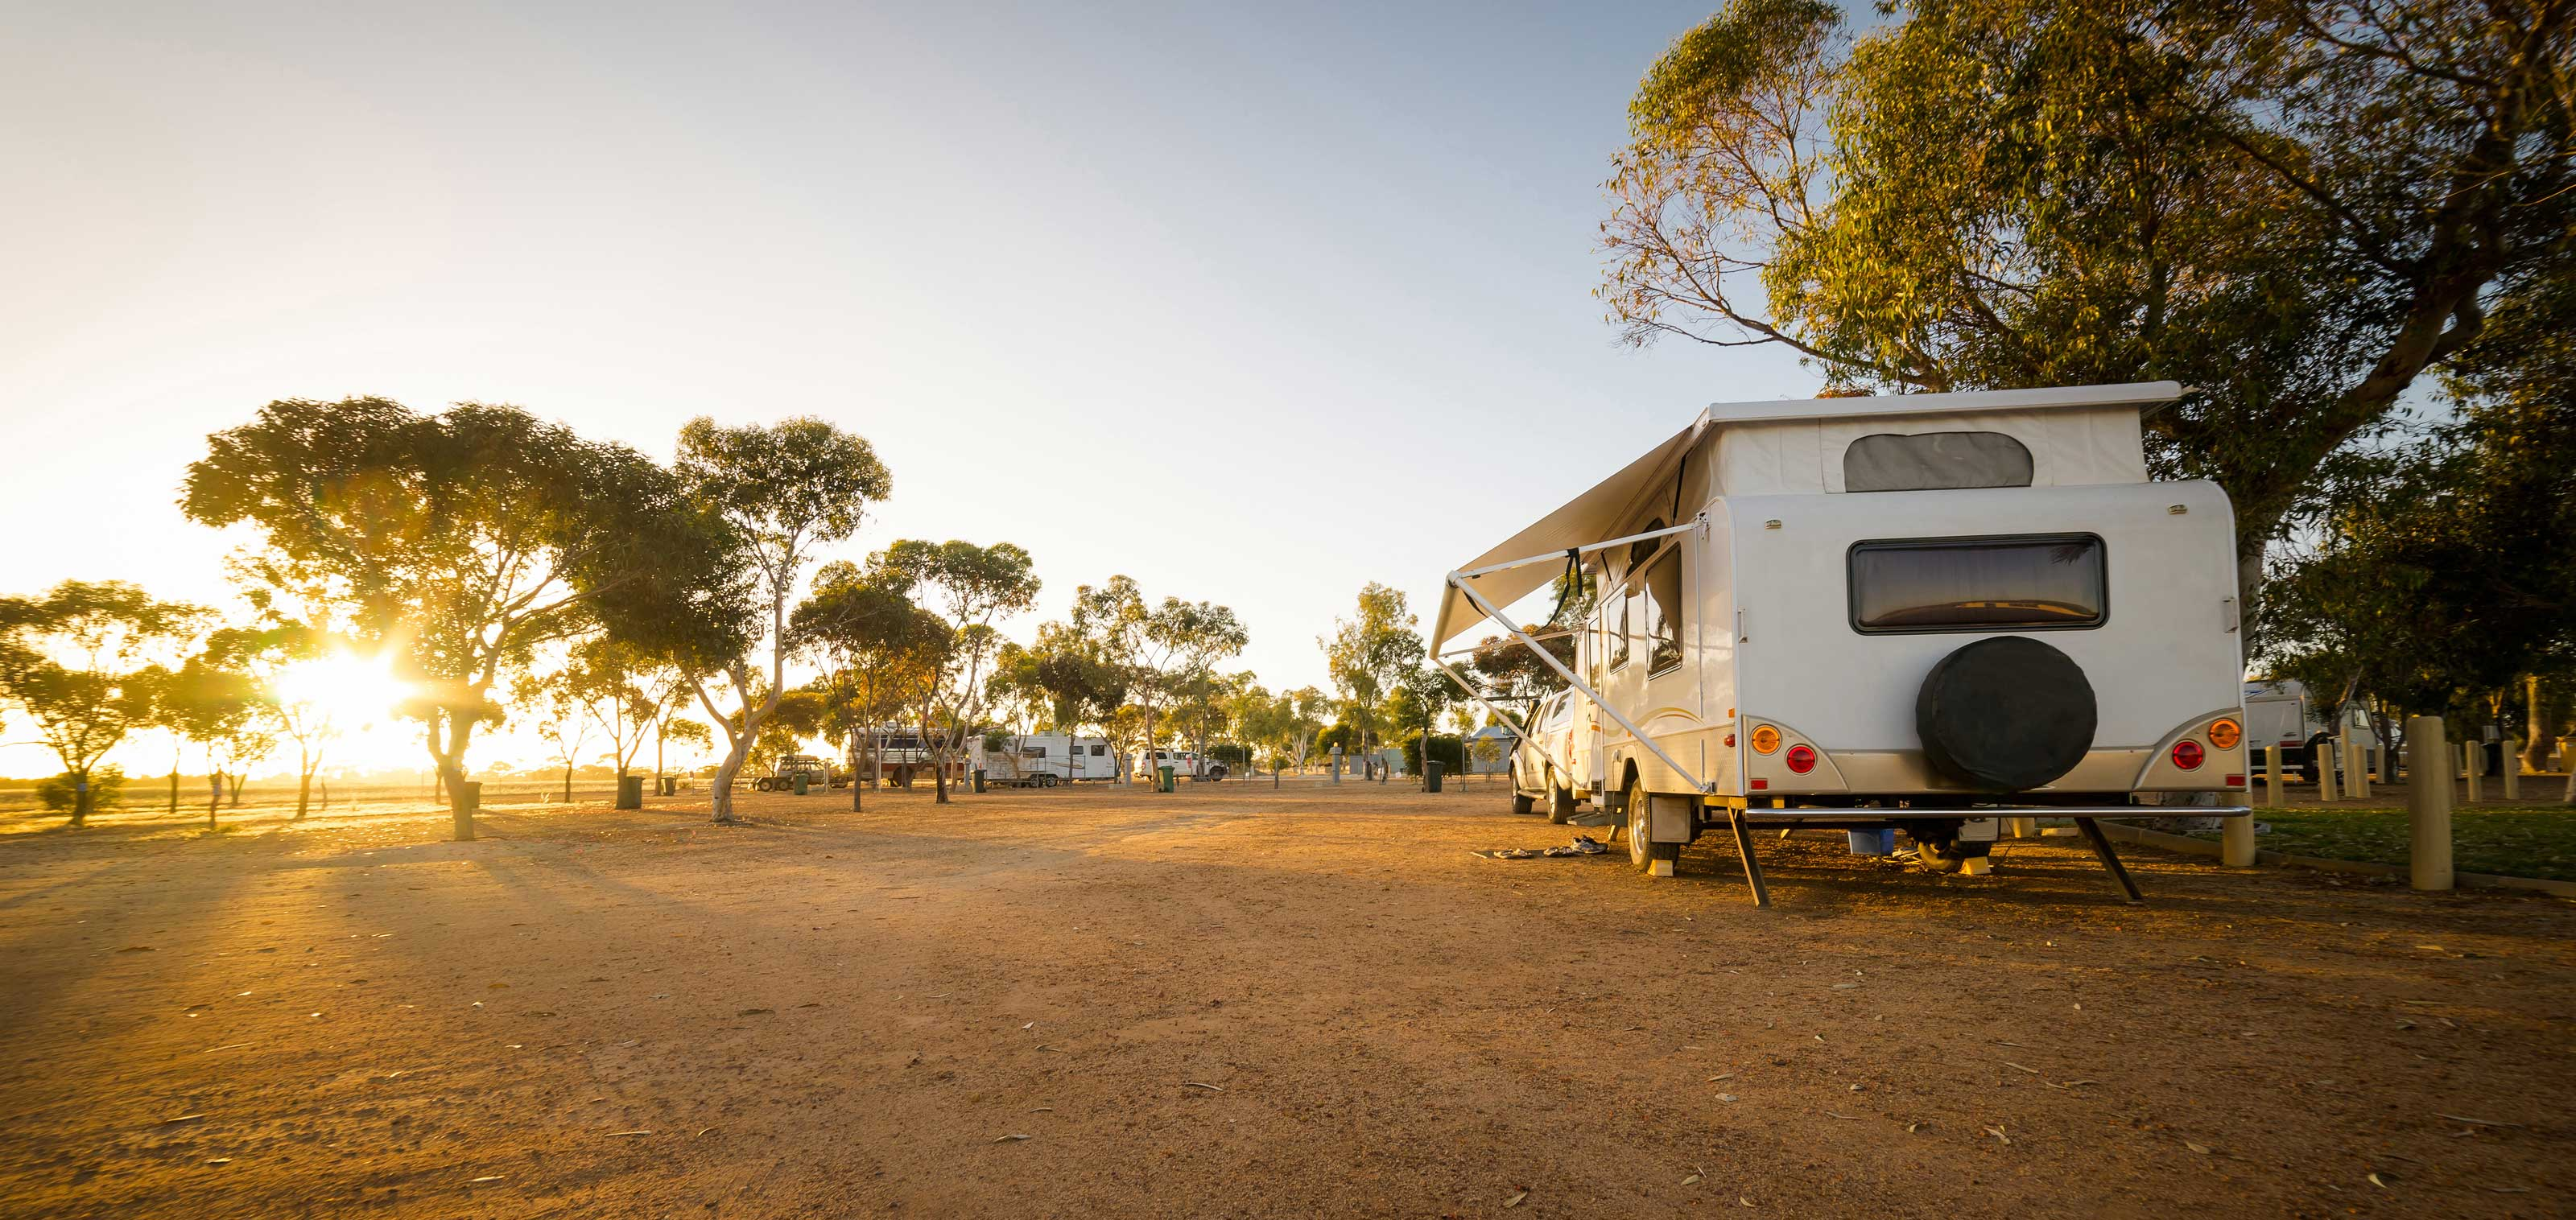 Motor caravan on a campground in Australia